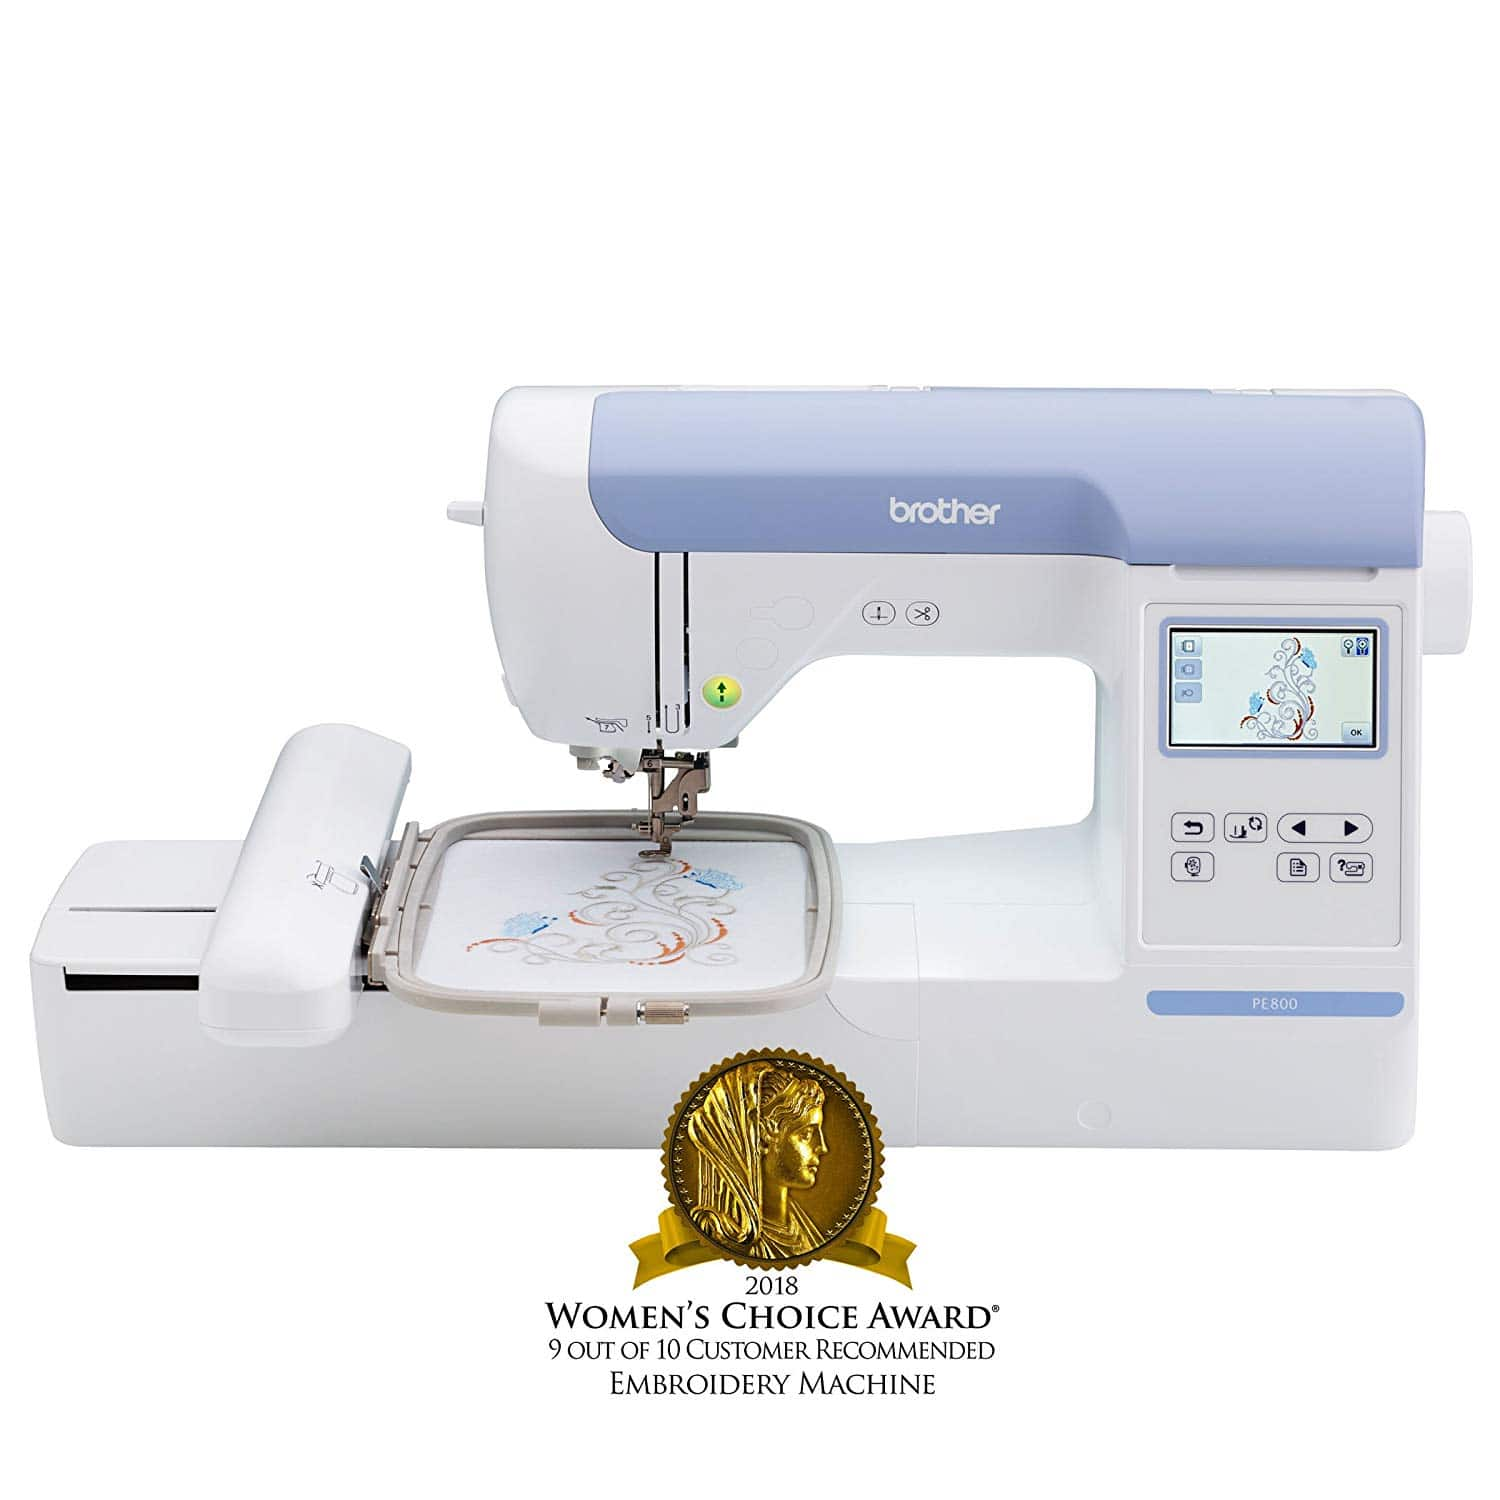 Brother Embroidery Machine $448